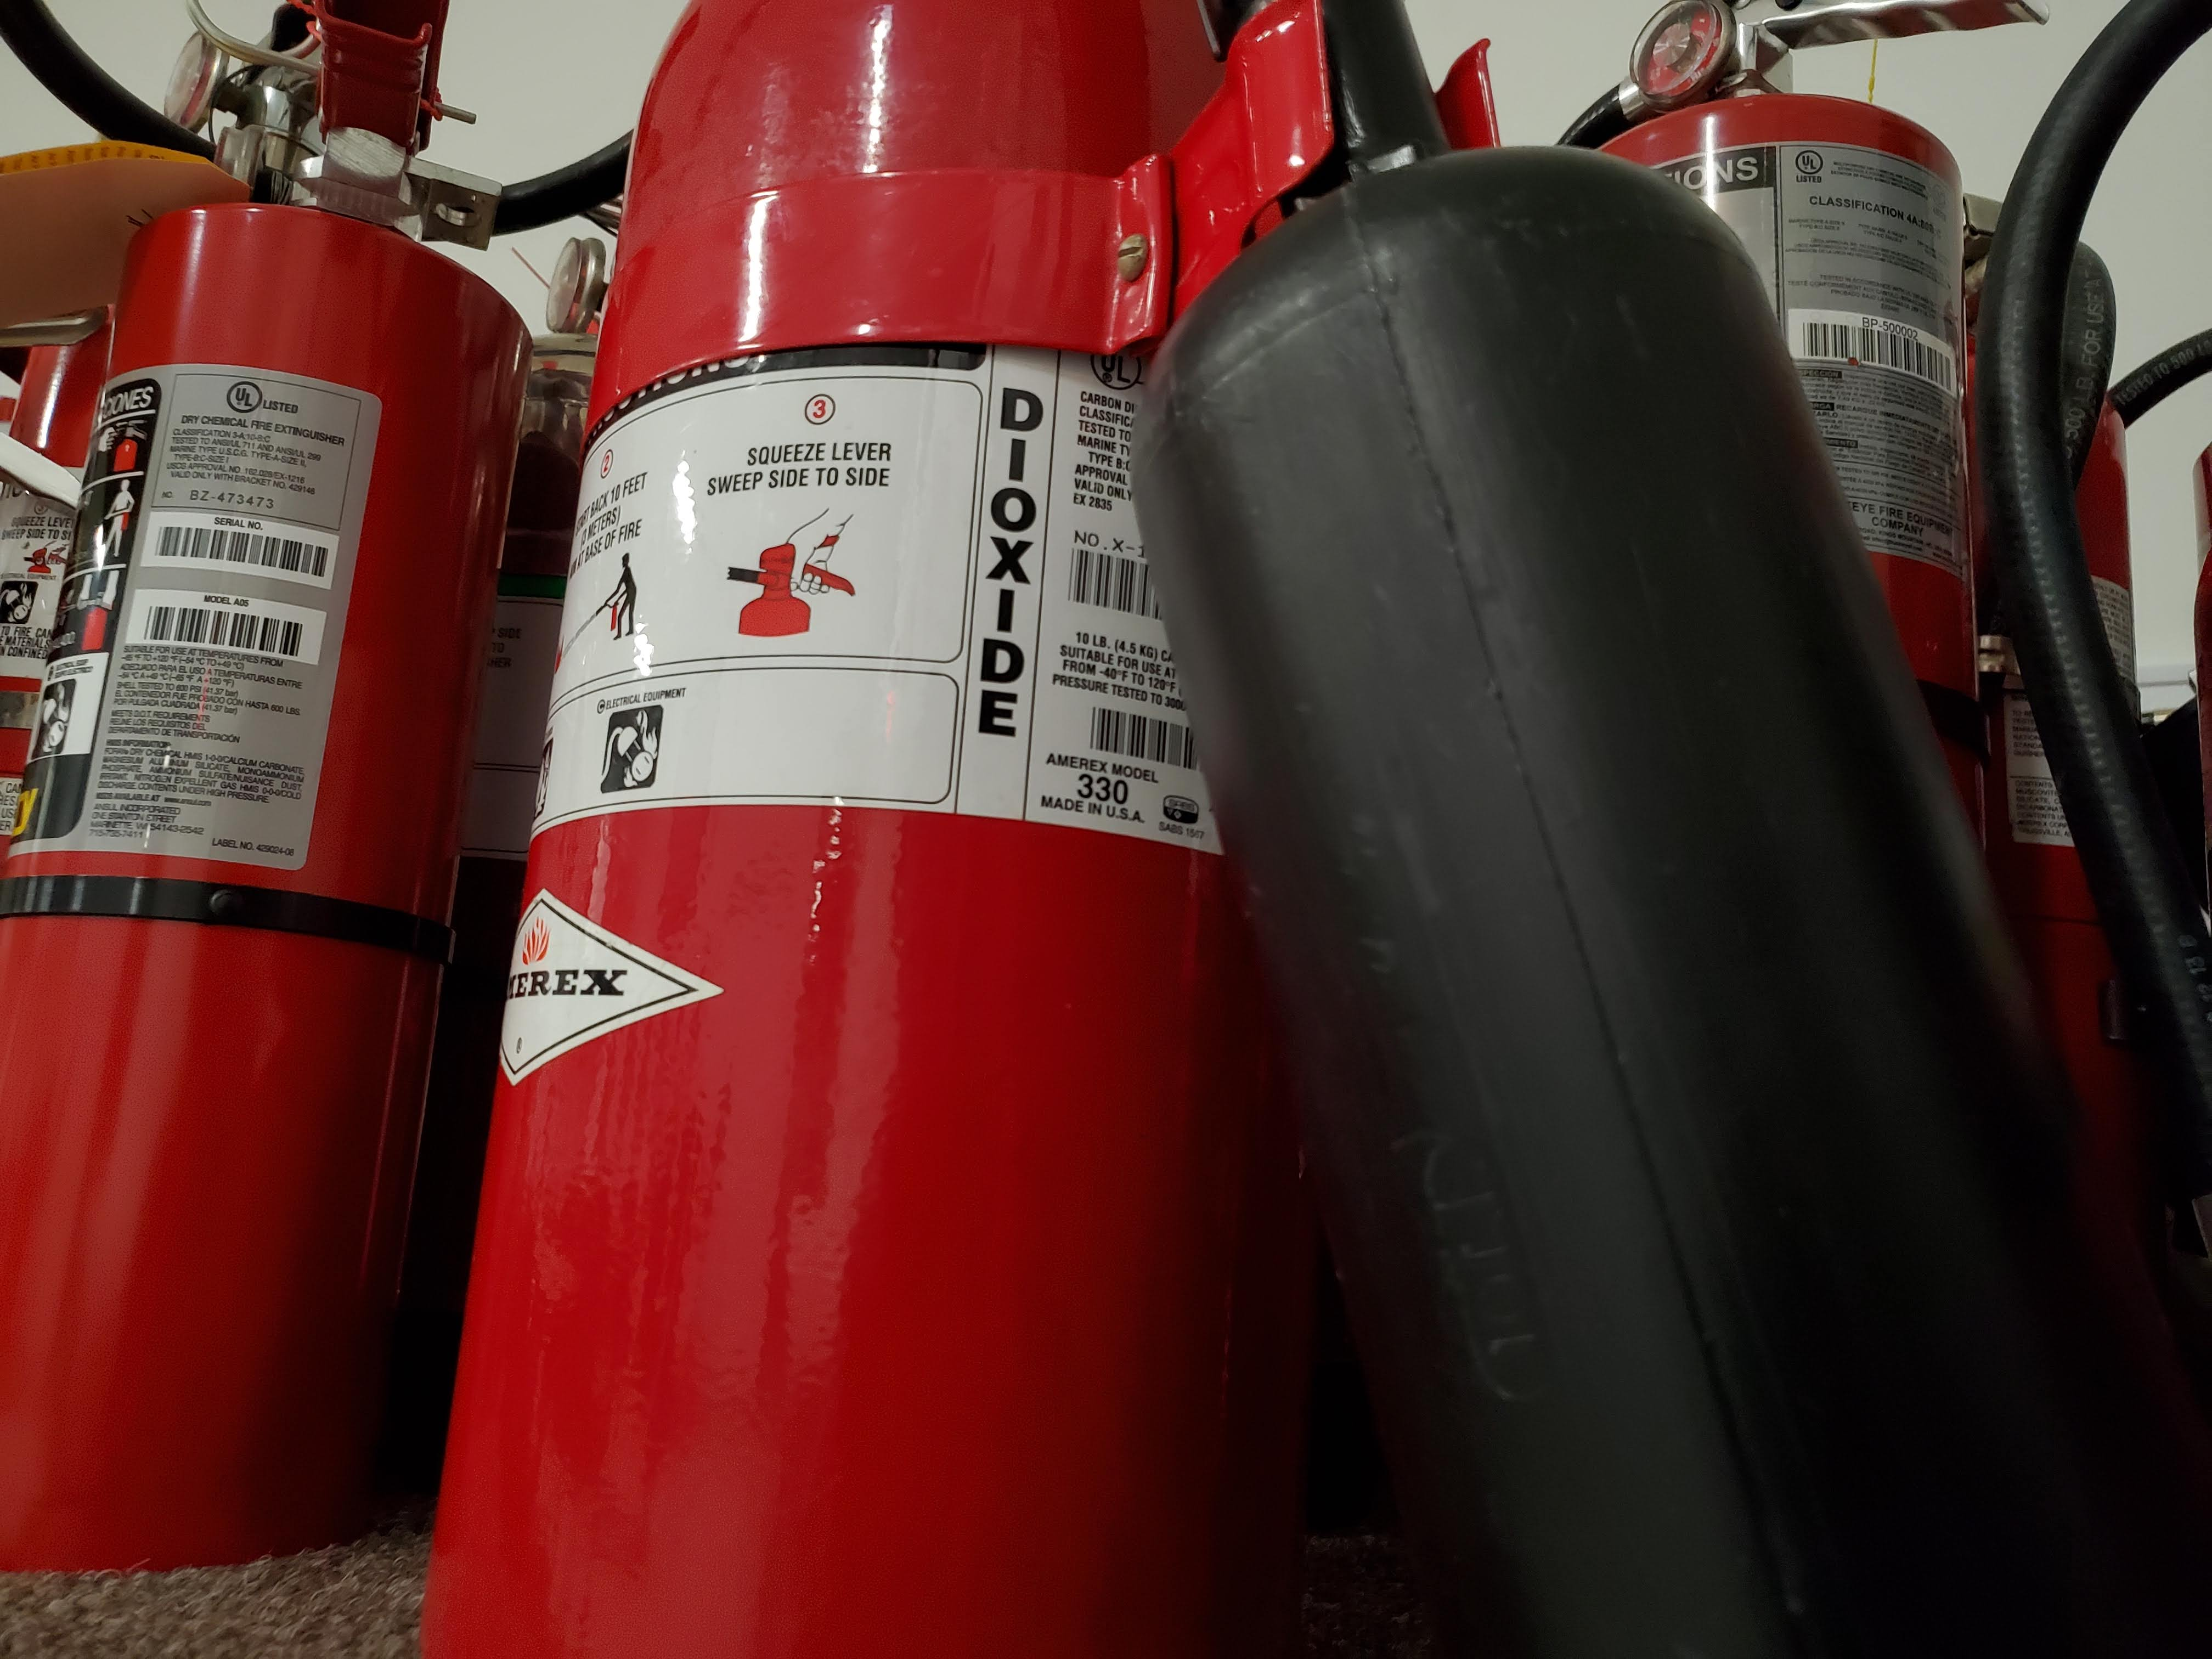 Top 5 Things to Know about Carbon Dioxide Extinguishers